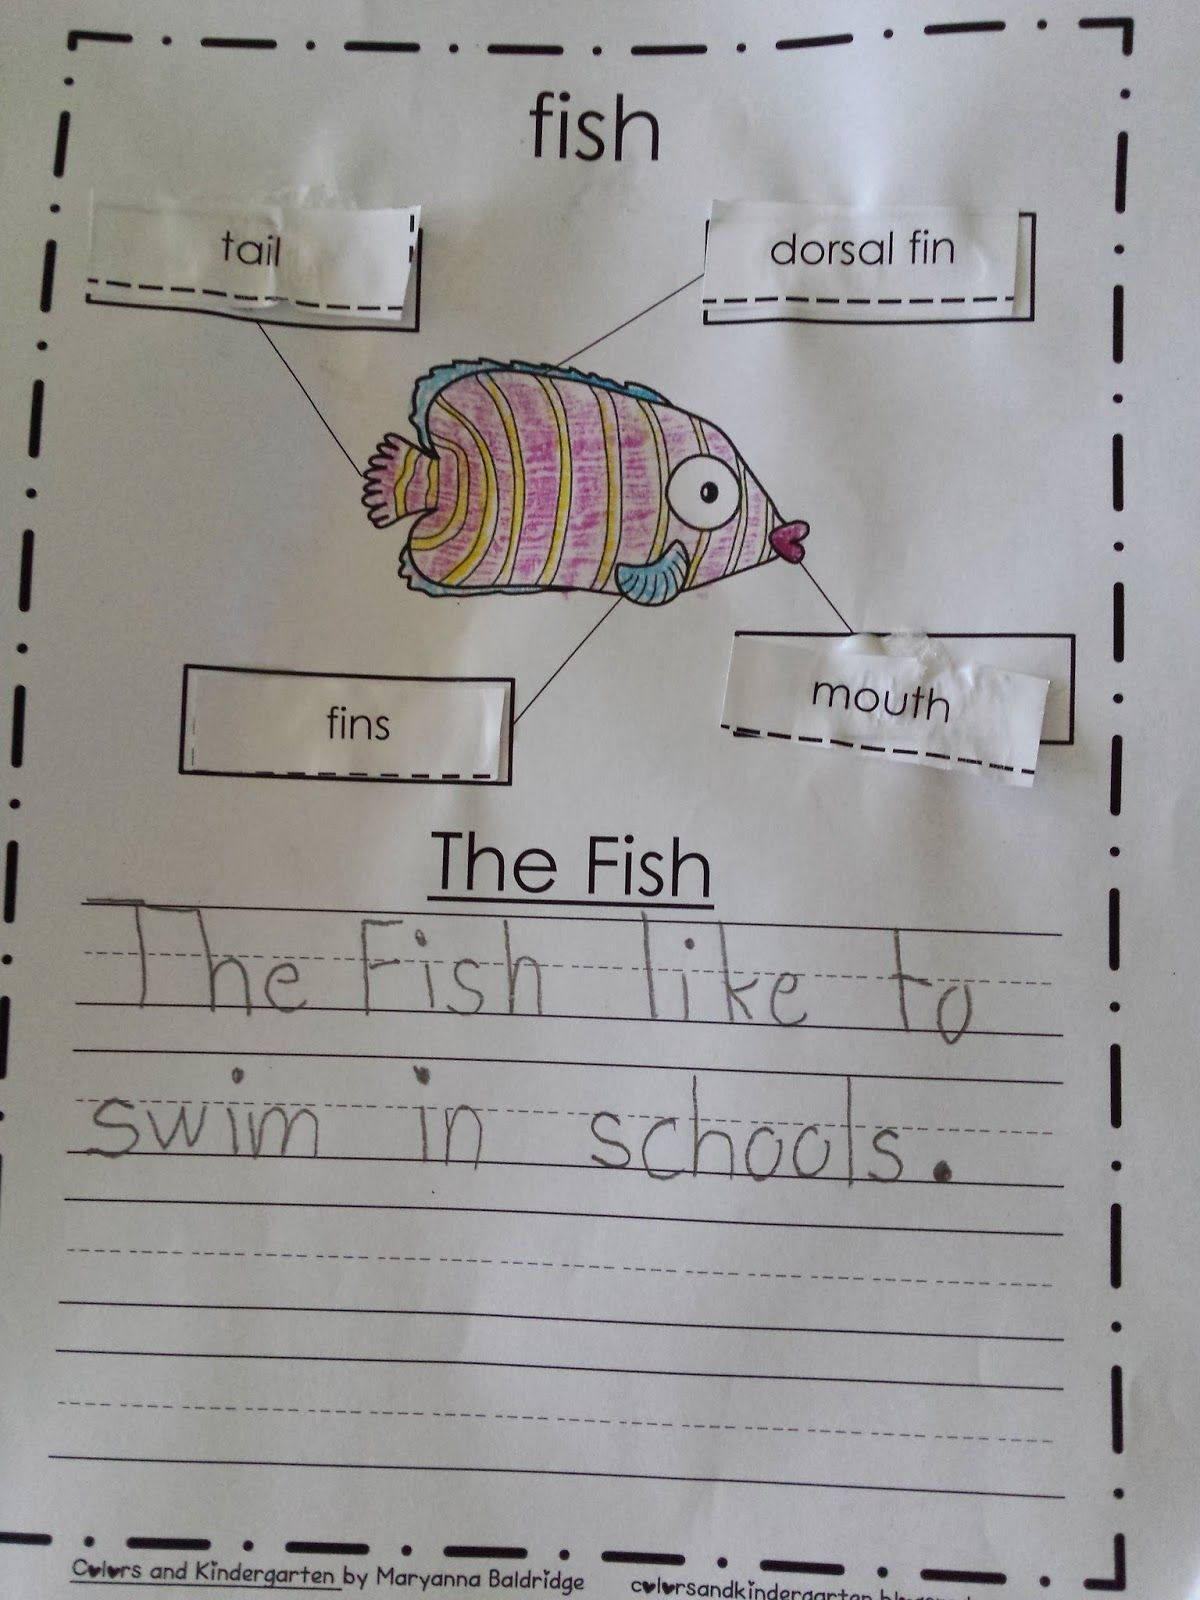 My Science Journal Ocean Pre K Kindergarten 1st Grade Science Get Your Students Writing About